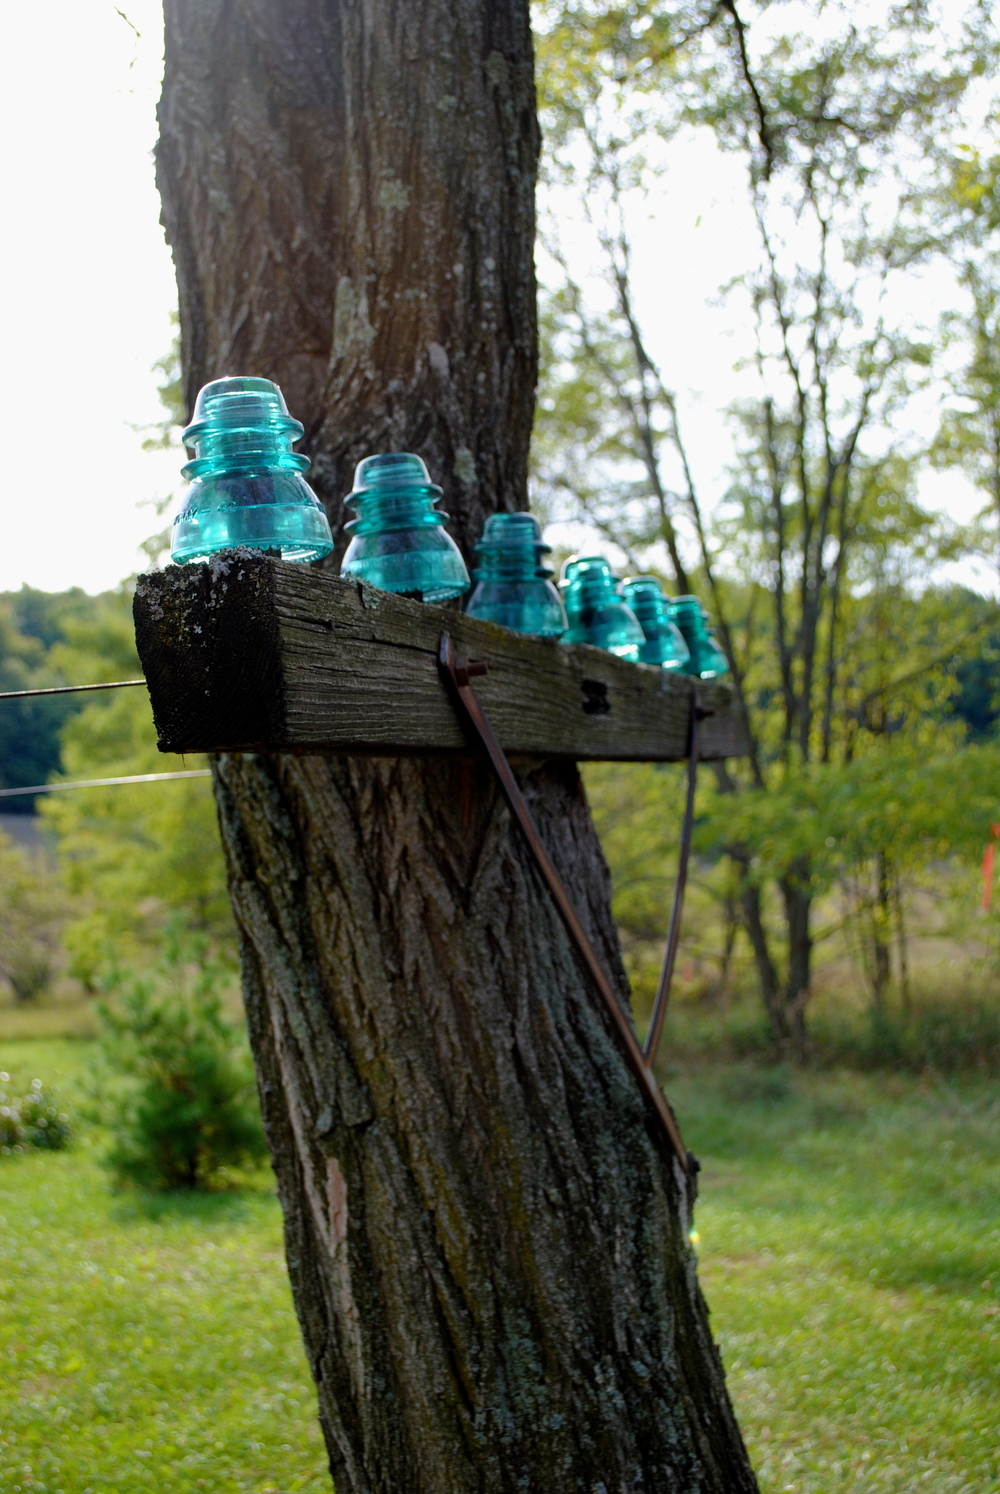 Insulators as far as the eye can see...